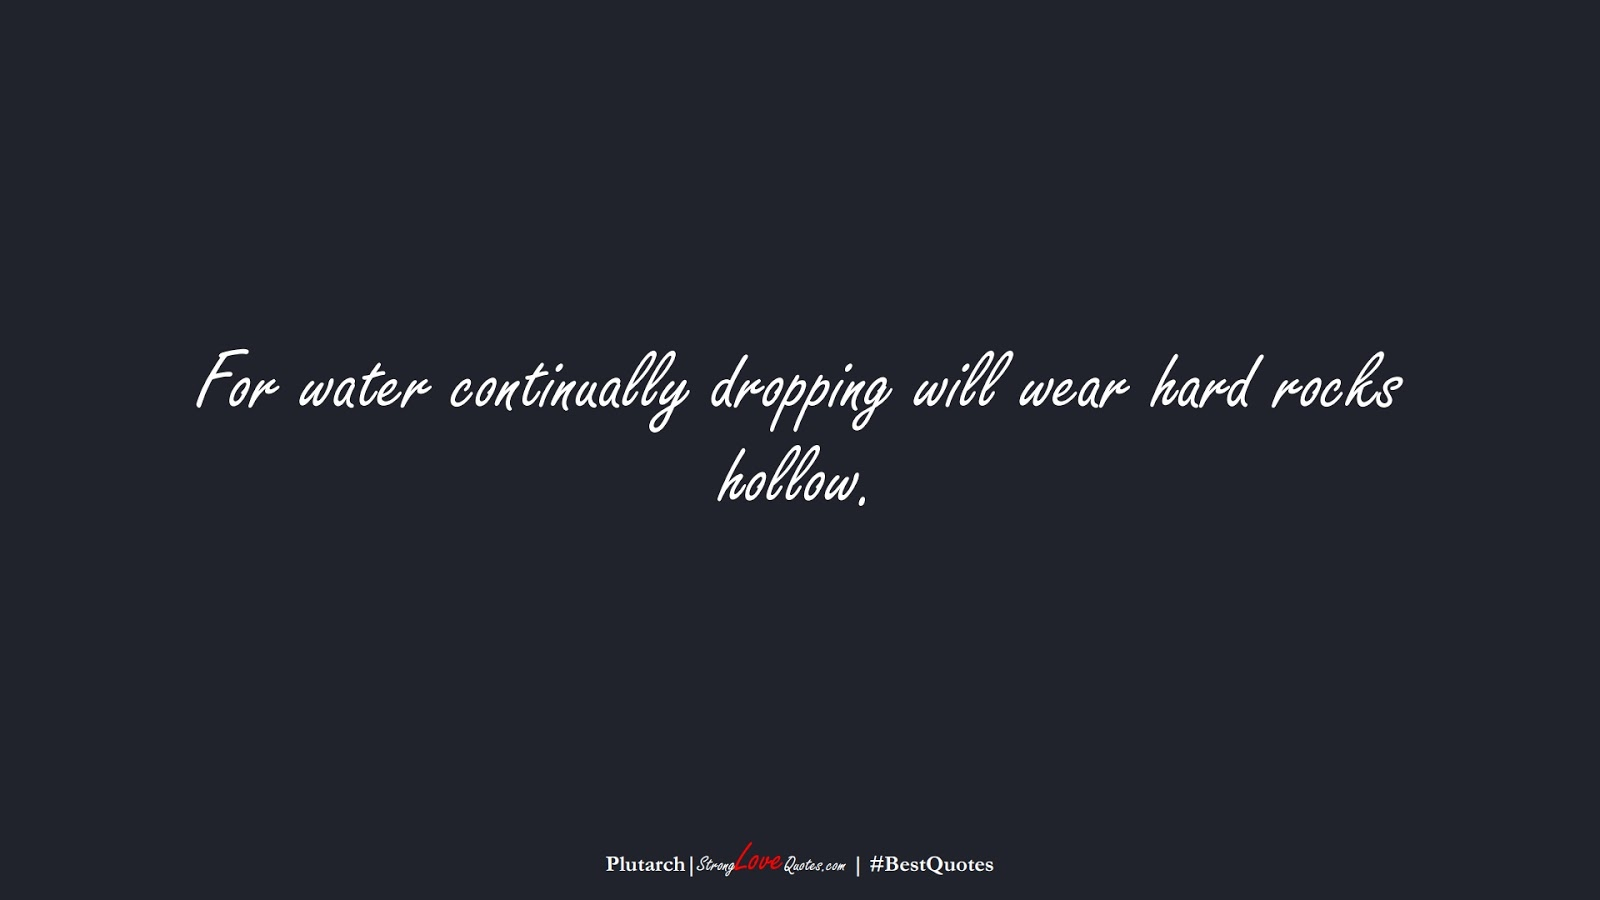 For water continually dropping will wear hard rocks hollow. (Plutarch);  #BestQuotes